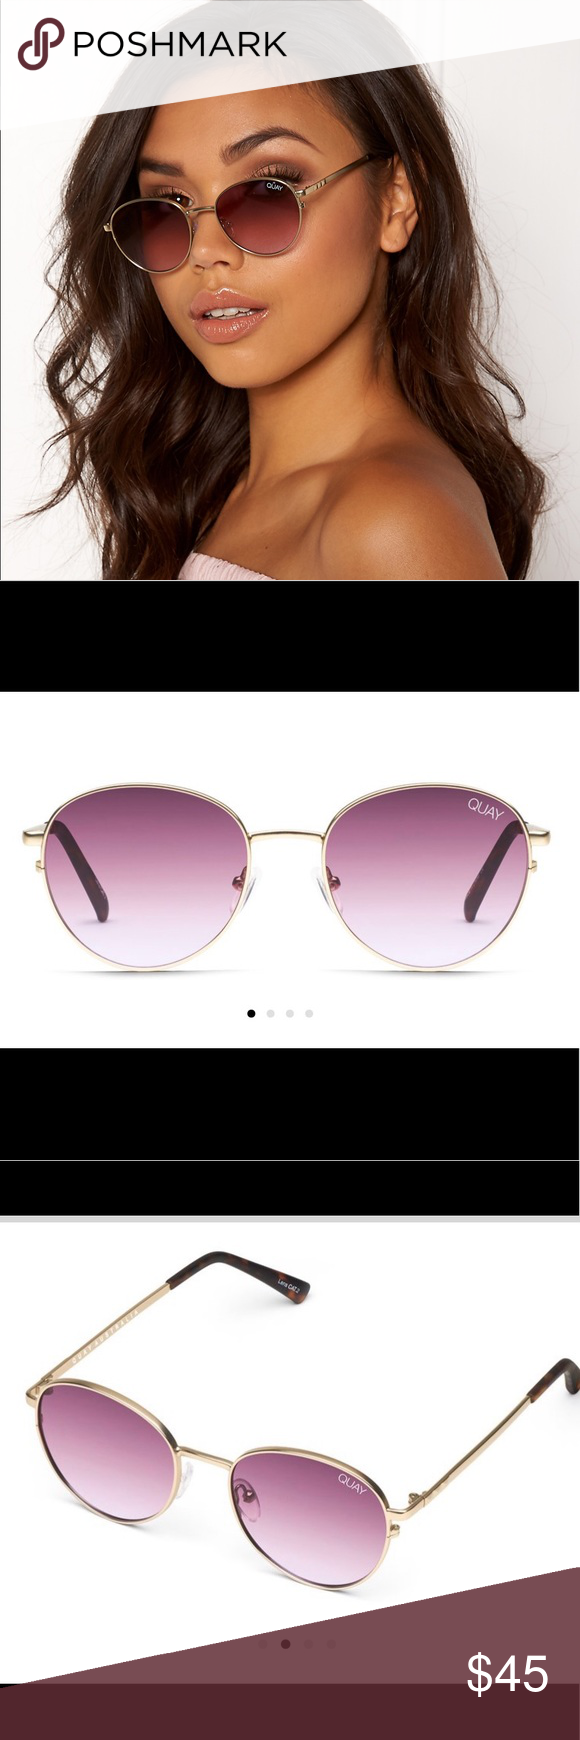 8de3ac8151 QUAY Crazy Love GLD PURP Sunglasses BRAND NEW Quay Australia Crazy Love  sunglasses. Gold Purple color. Brand new in packaging. Quay Australia  Accessories ...